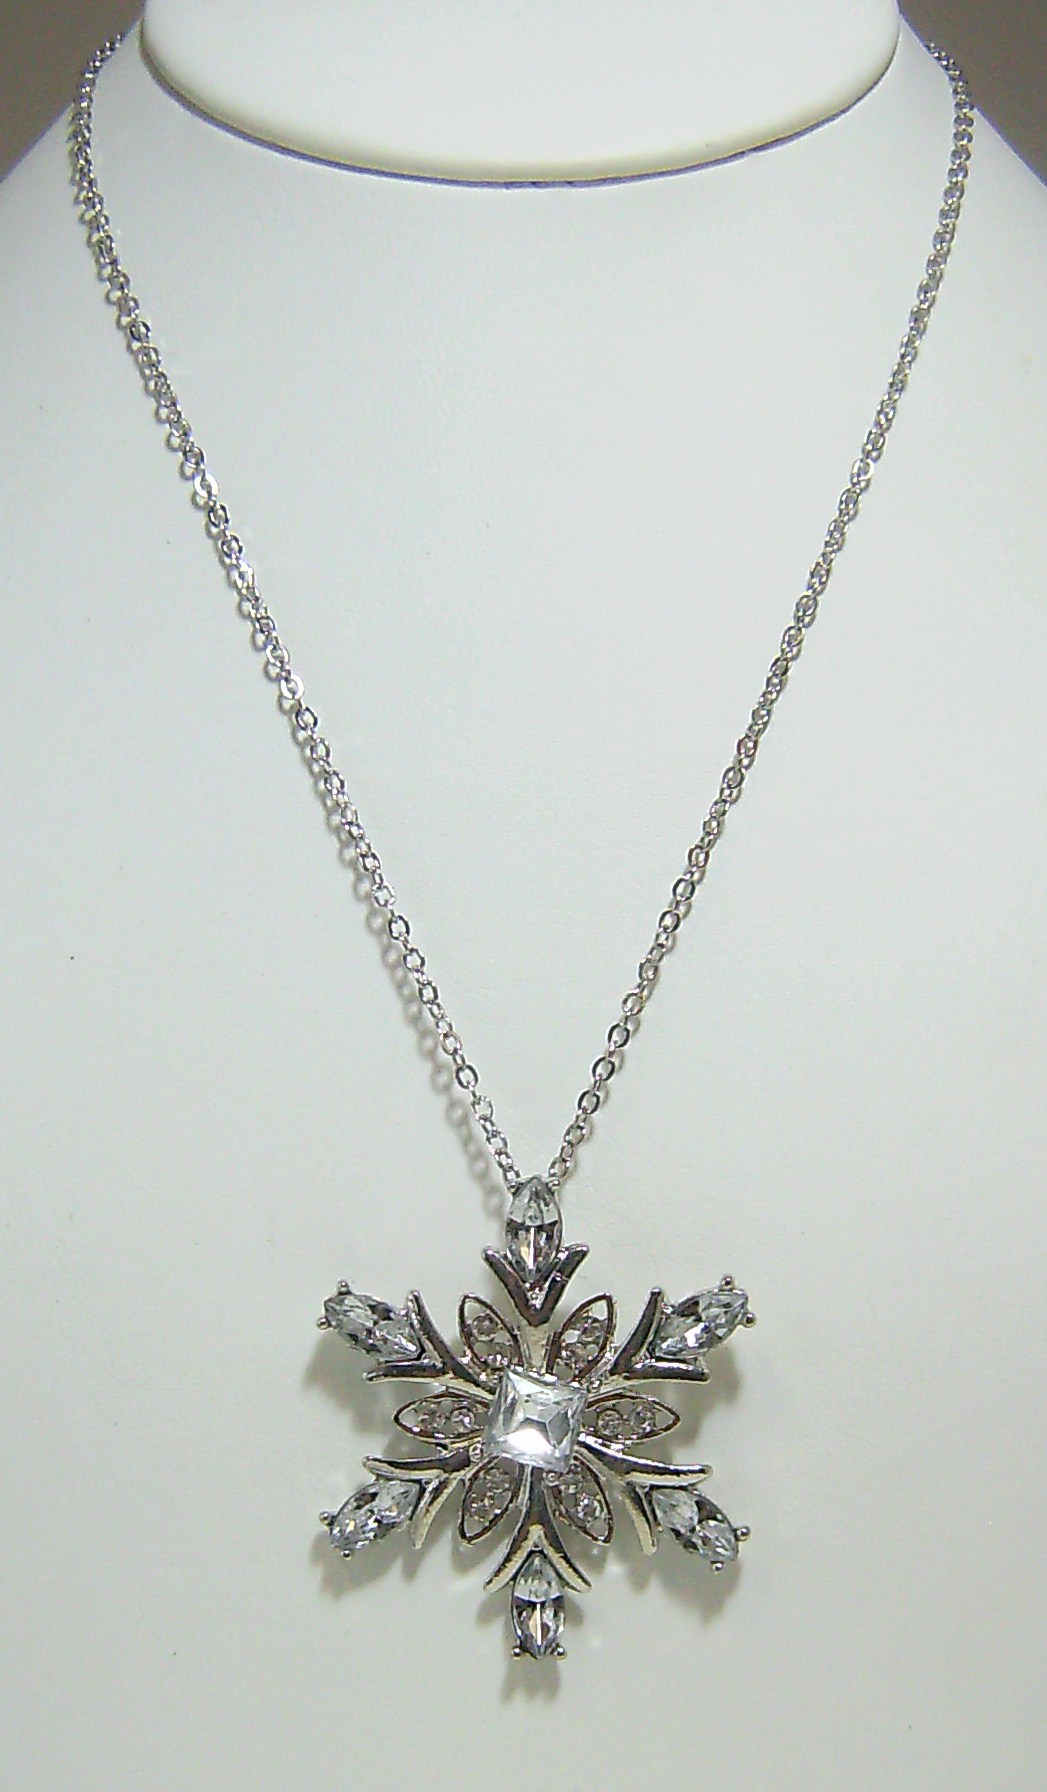 Silver snowflake rhinestone necklace with matching silver snowflake earrings.